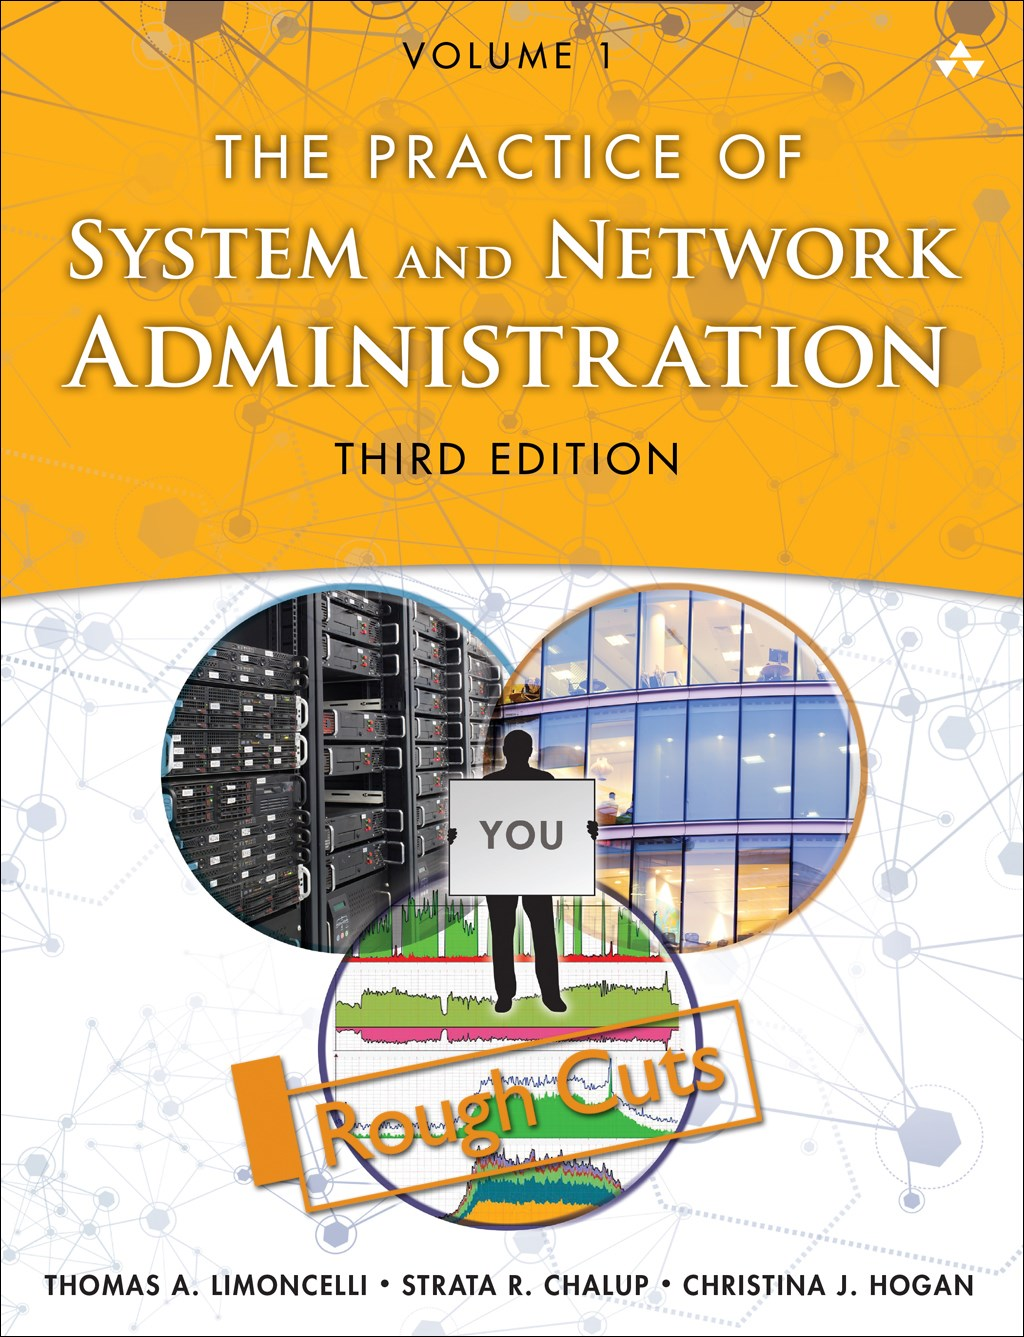 Practice of System and Network Administration, The : Volume 1, Rough Cuts, 3rd Edition